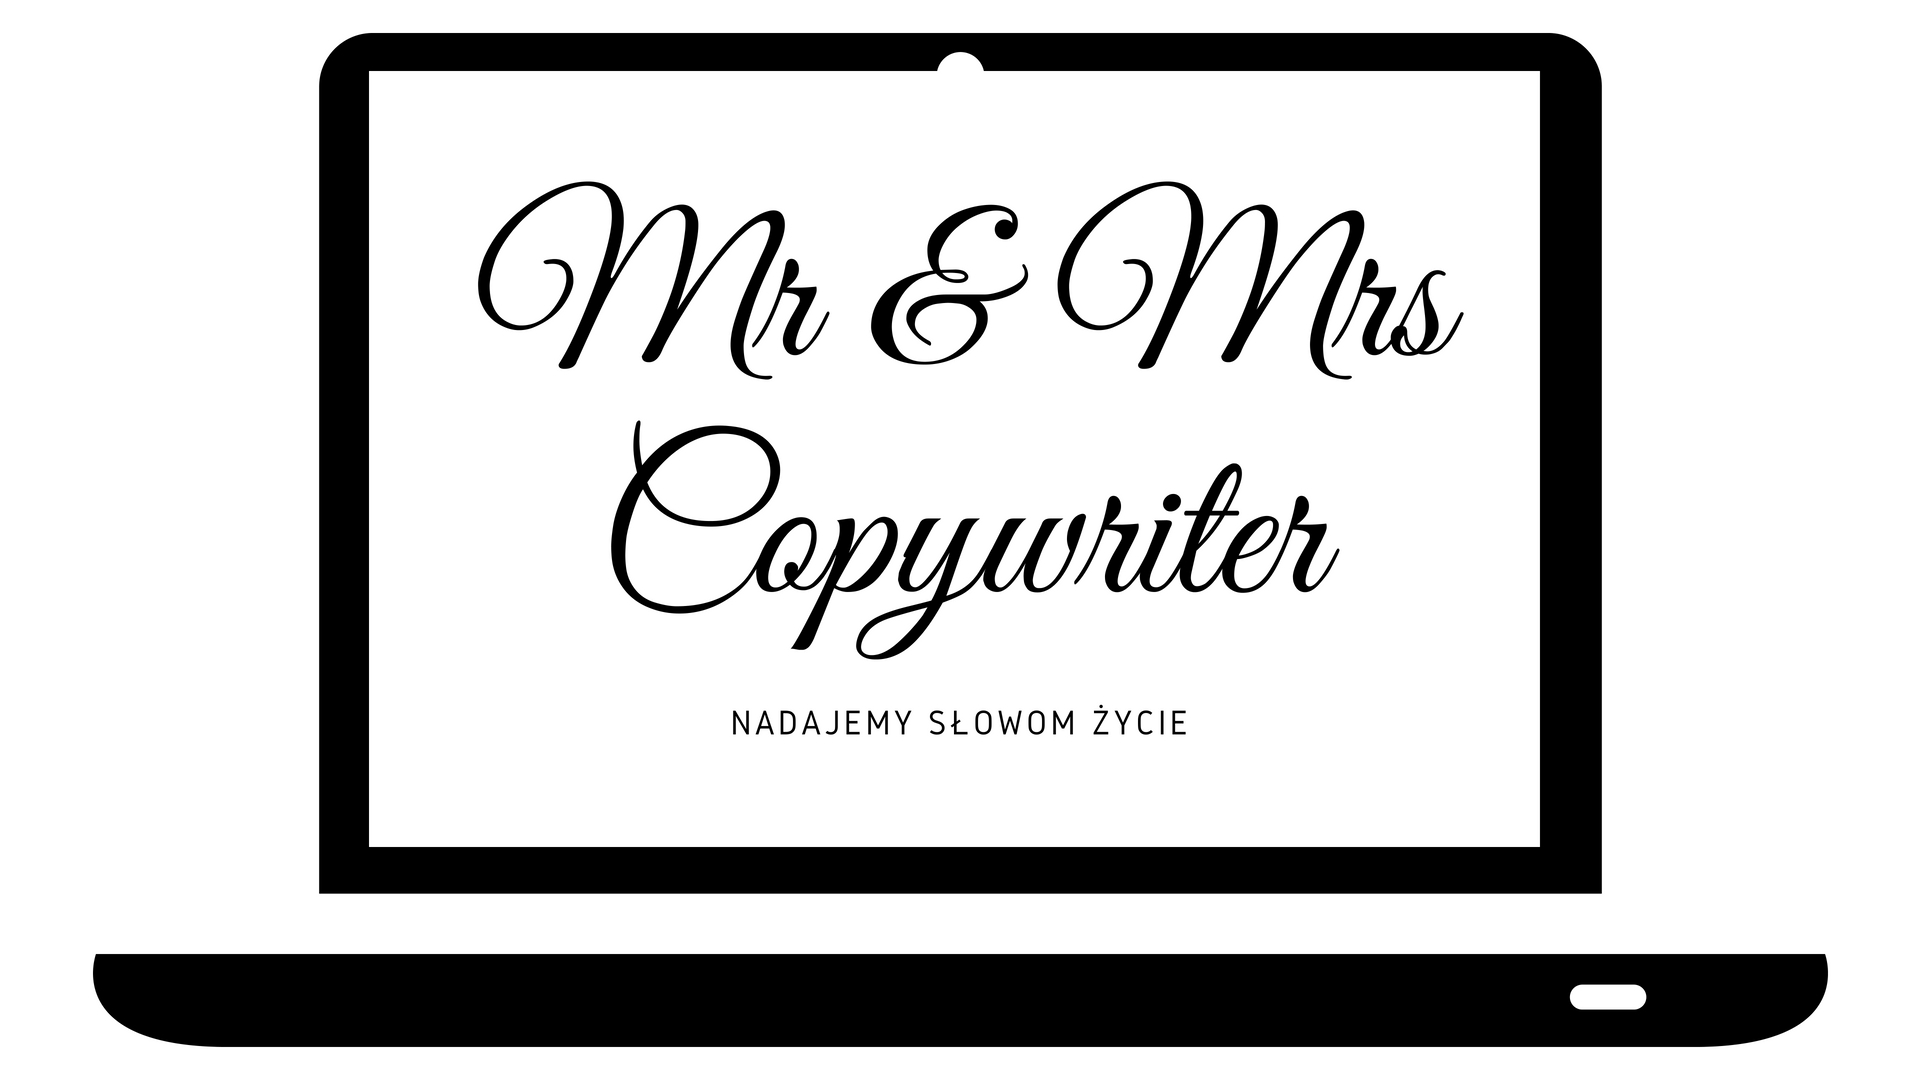 mr and mrs copywriter